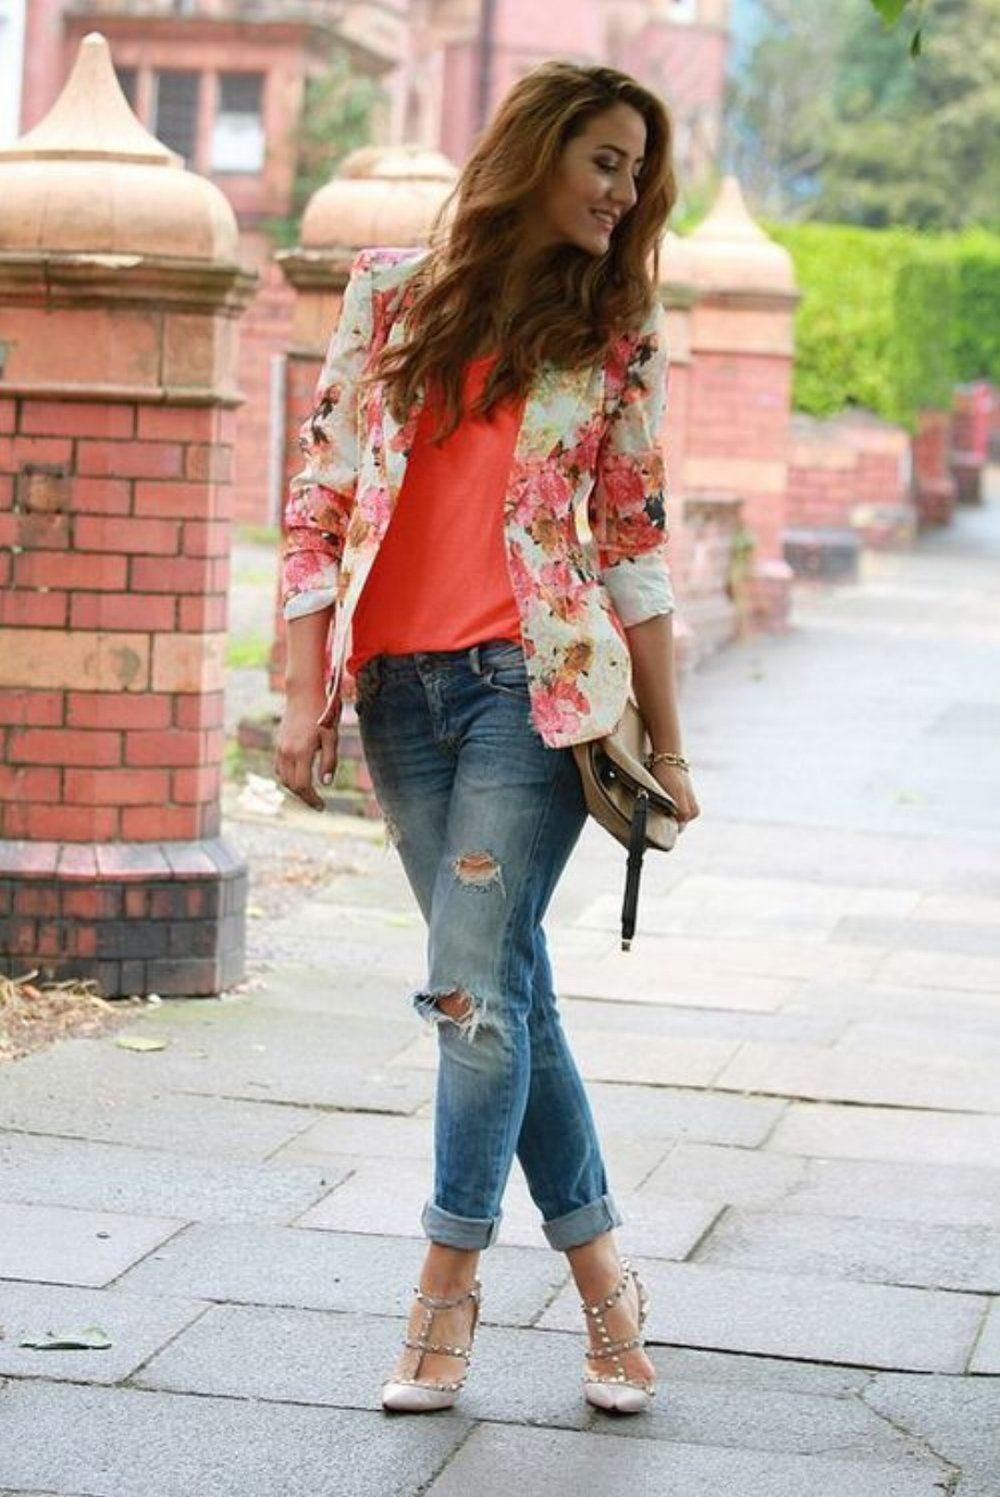 Floral Fashion Trend For This Spring - 8 Hot Spring Outfits On